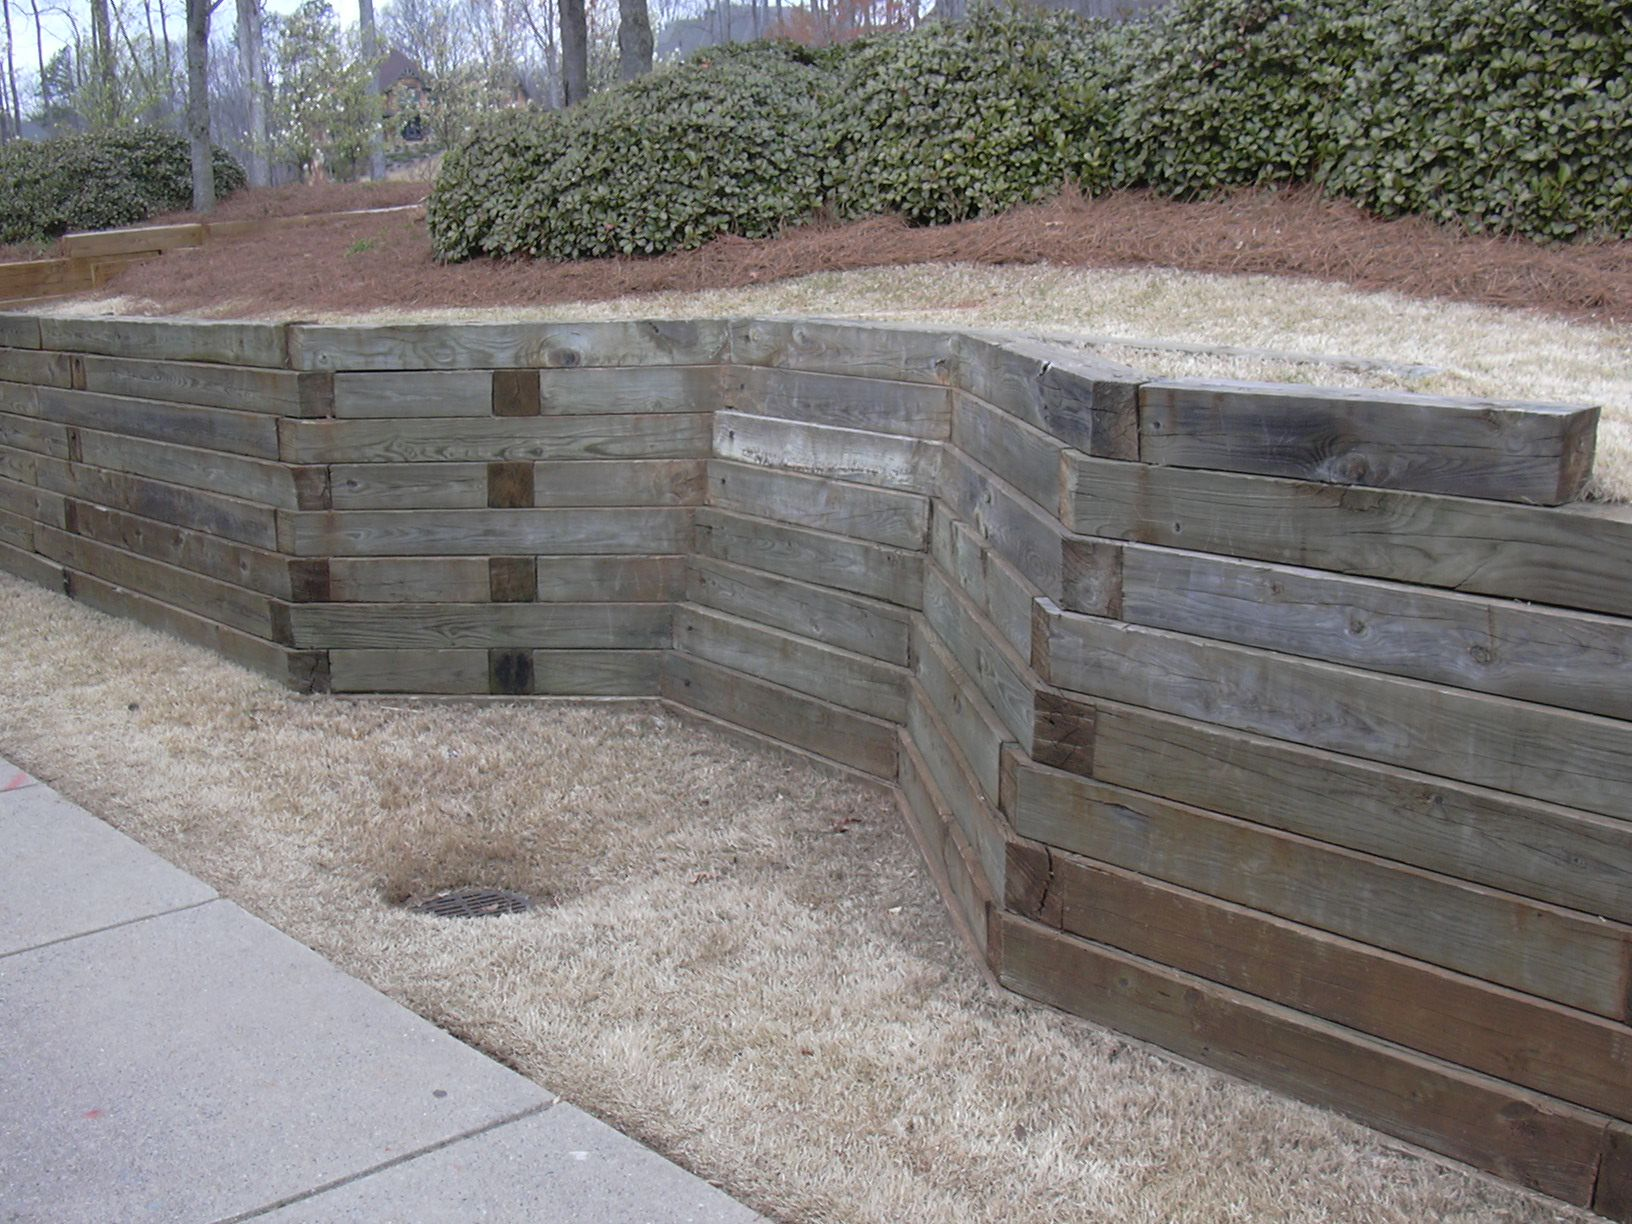 Timber Retaining Wall Designs timber retaining wall design timber retaining wall design retaining walls retaining wall design on wall design Traditional Landscape Timbers As Fence Posts Retaining Wall Ideas Small Backyard Landscaping Ideas Ideas And Hot Home Depot Landscape Timbers